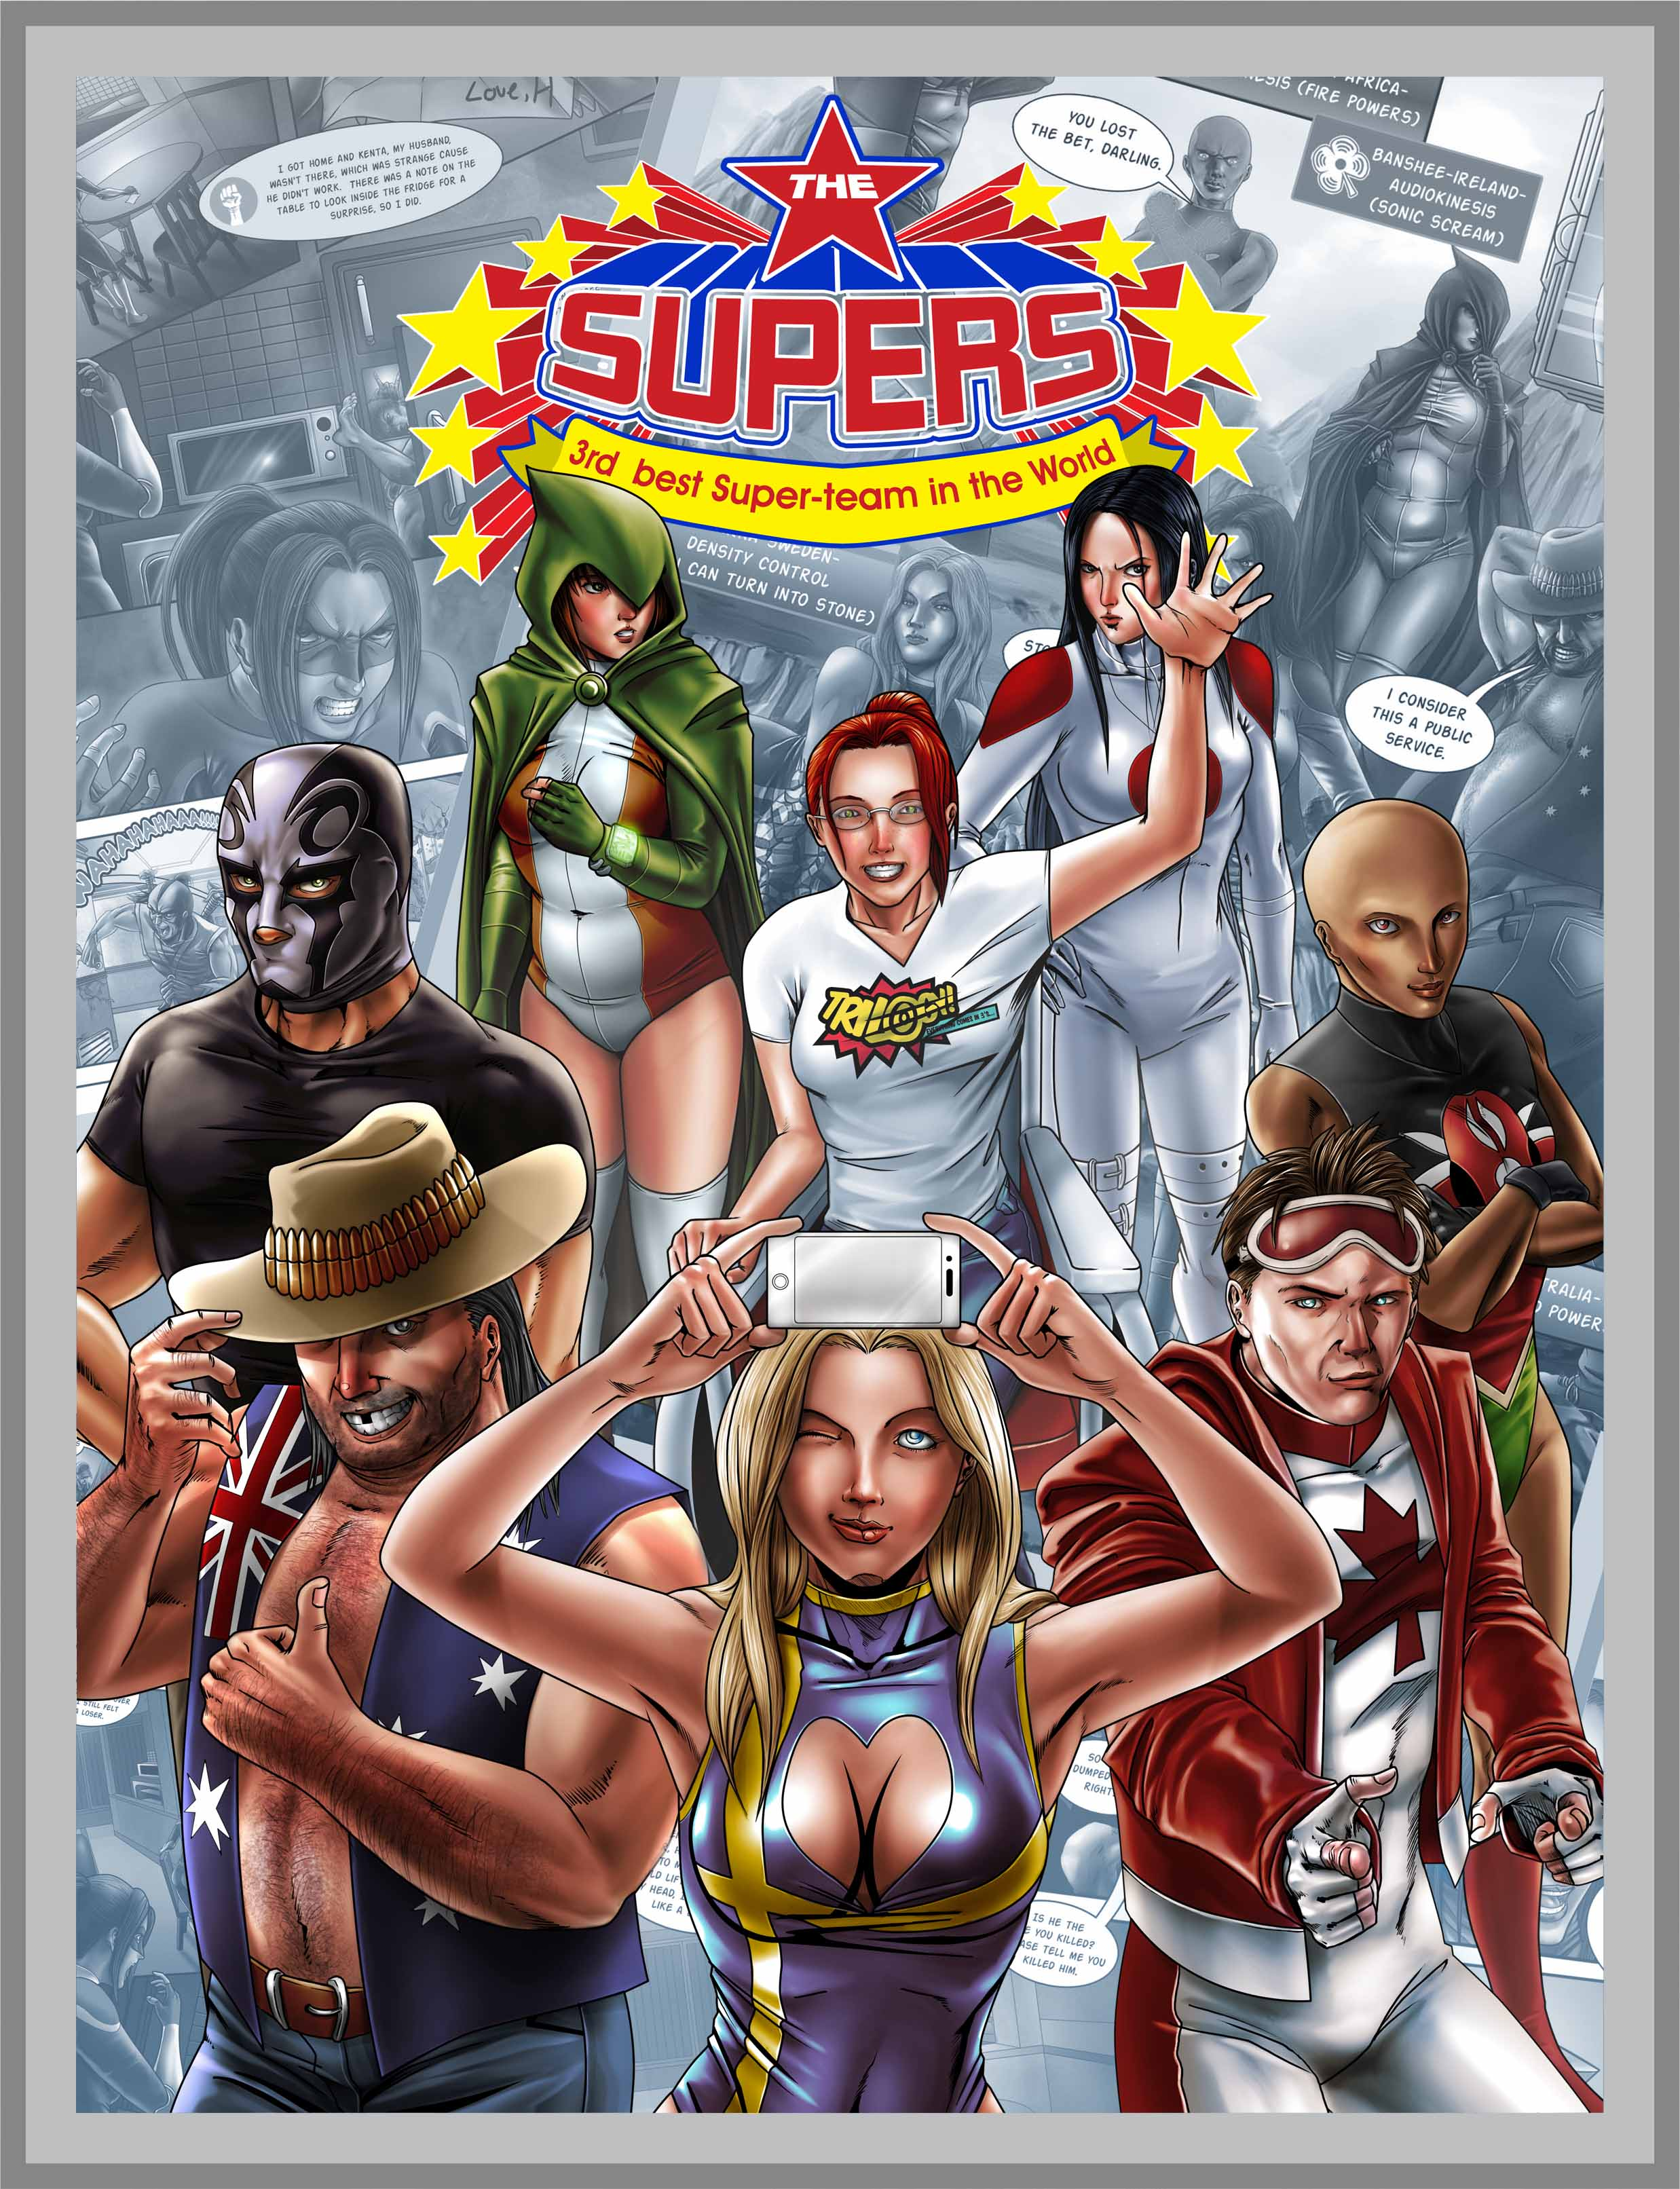 The Supers #1 cover...